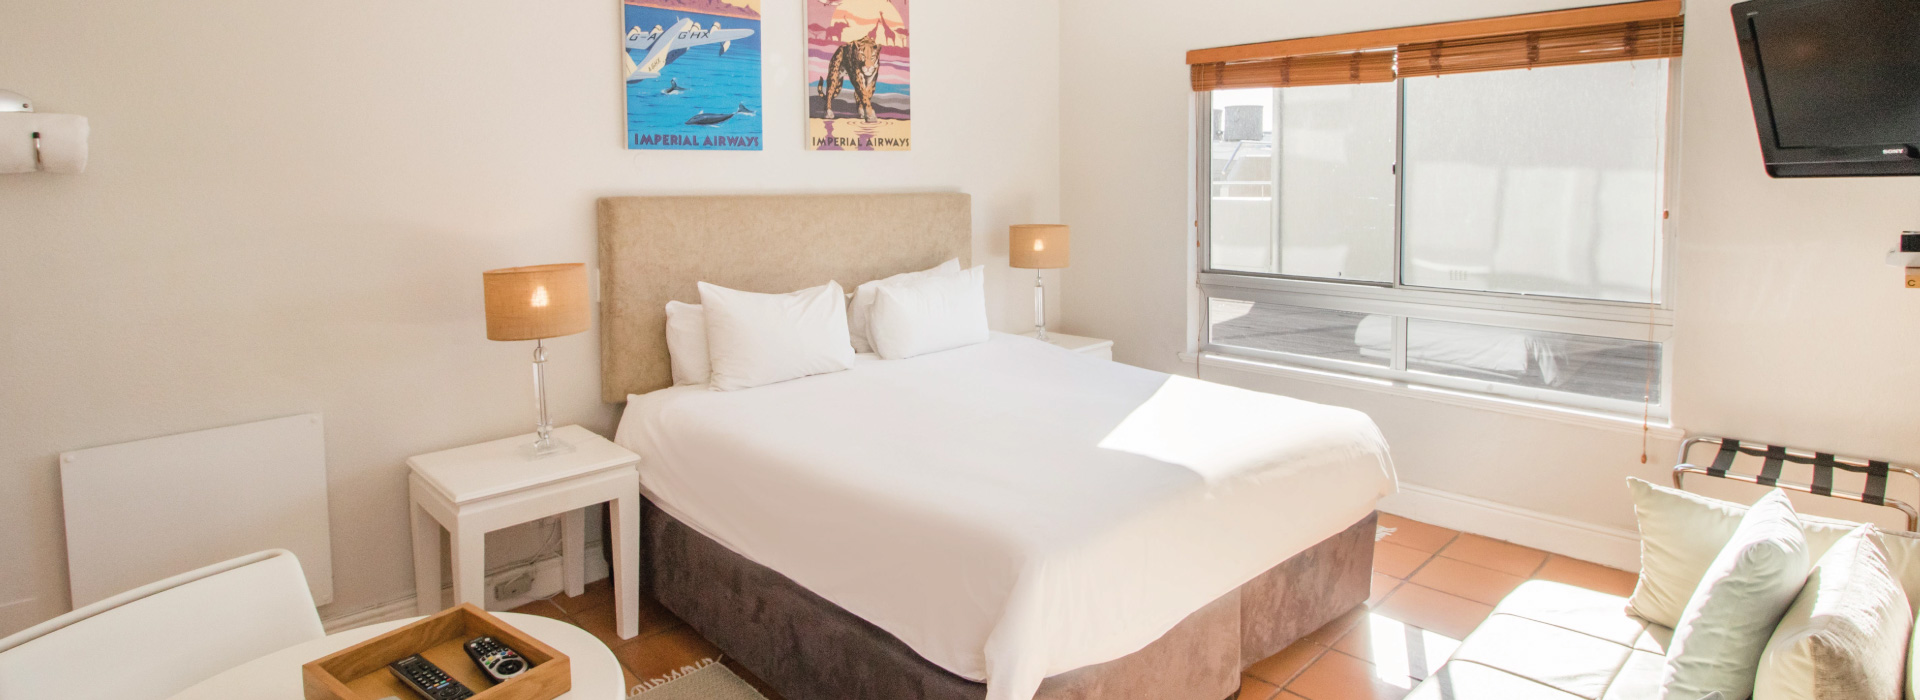 Camps Bay Accommodation Camps Bay Village Holiday